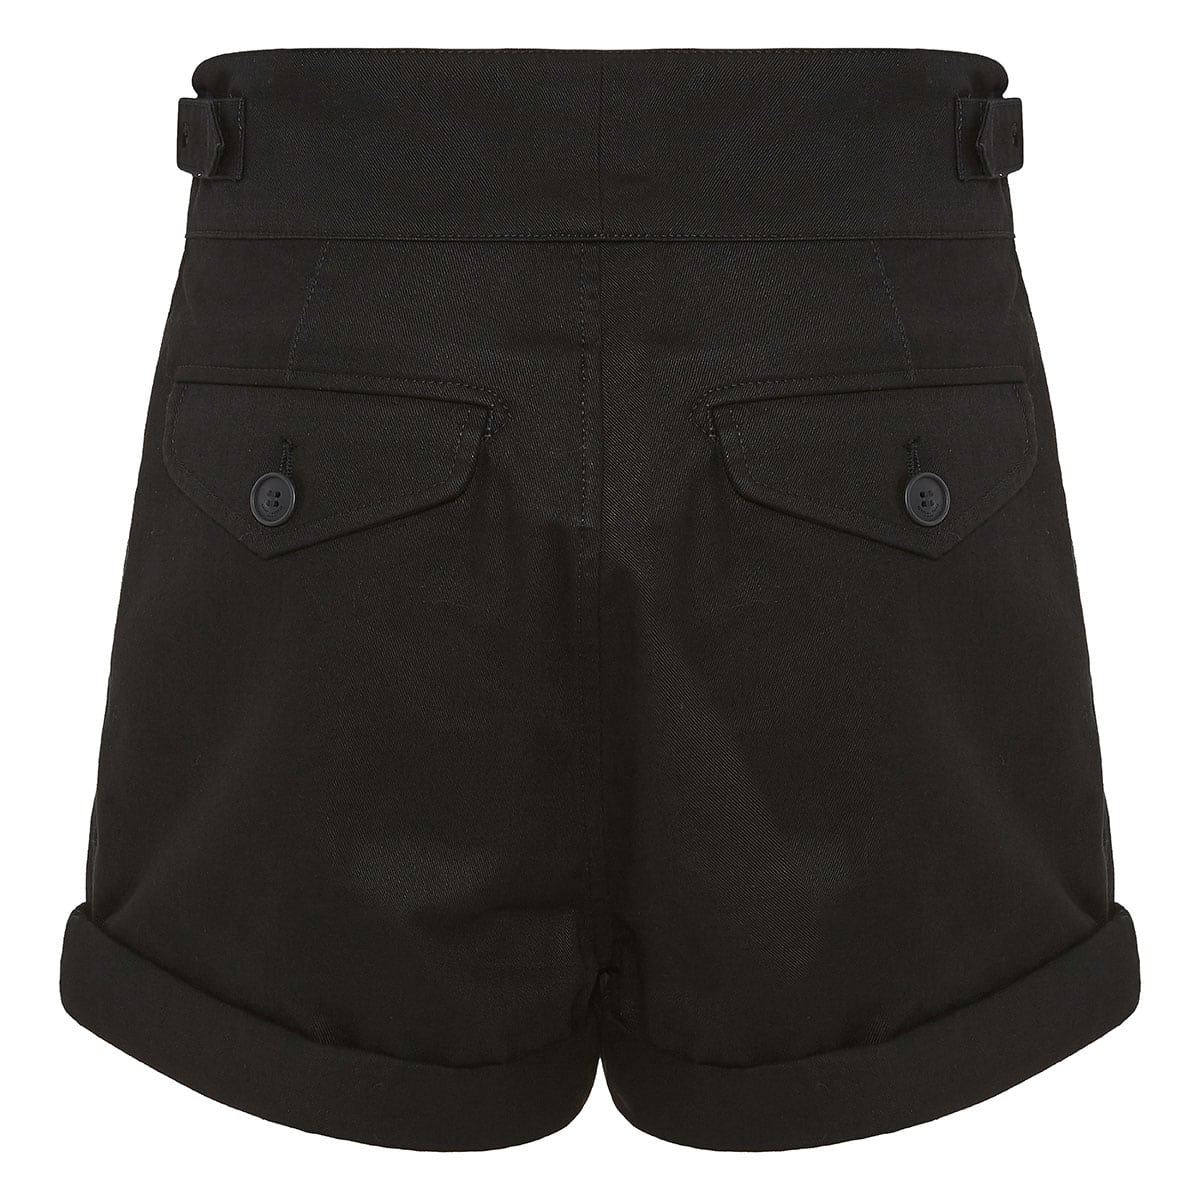 High-waist cotton shorts